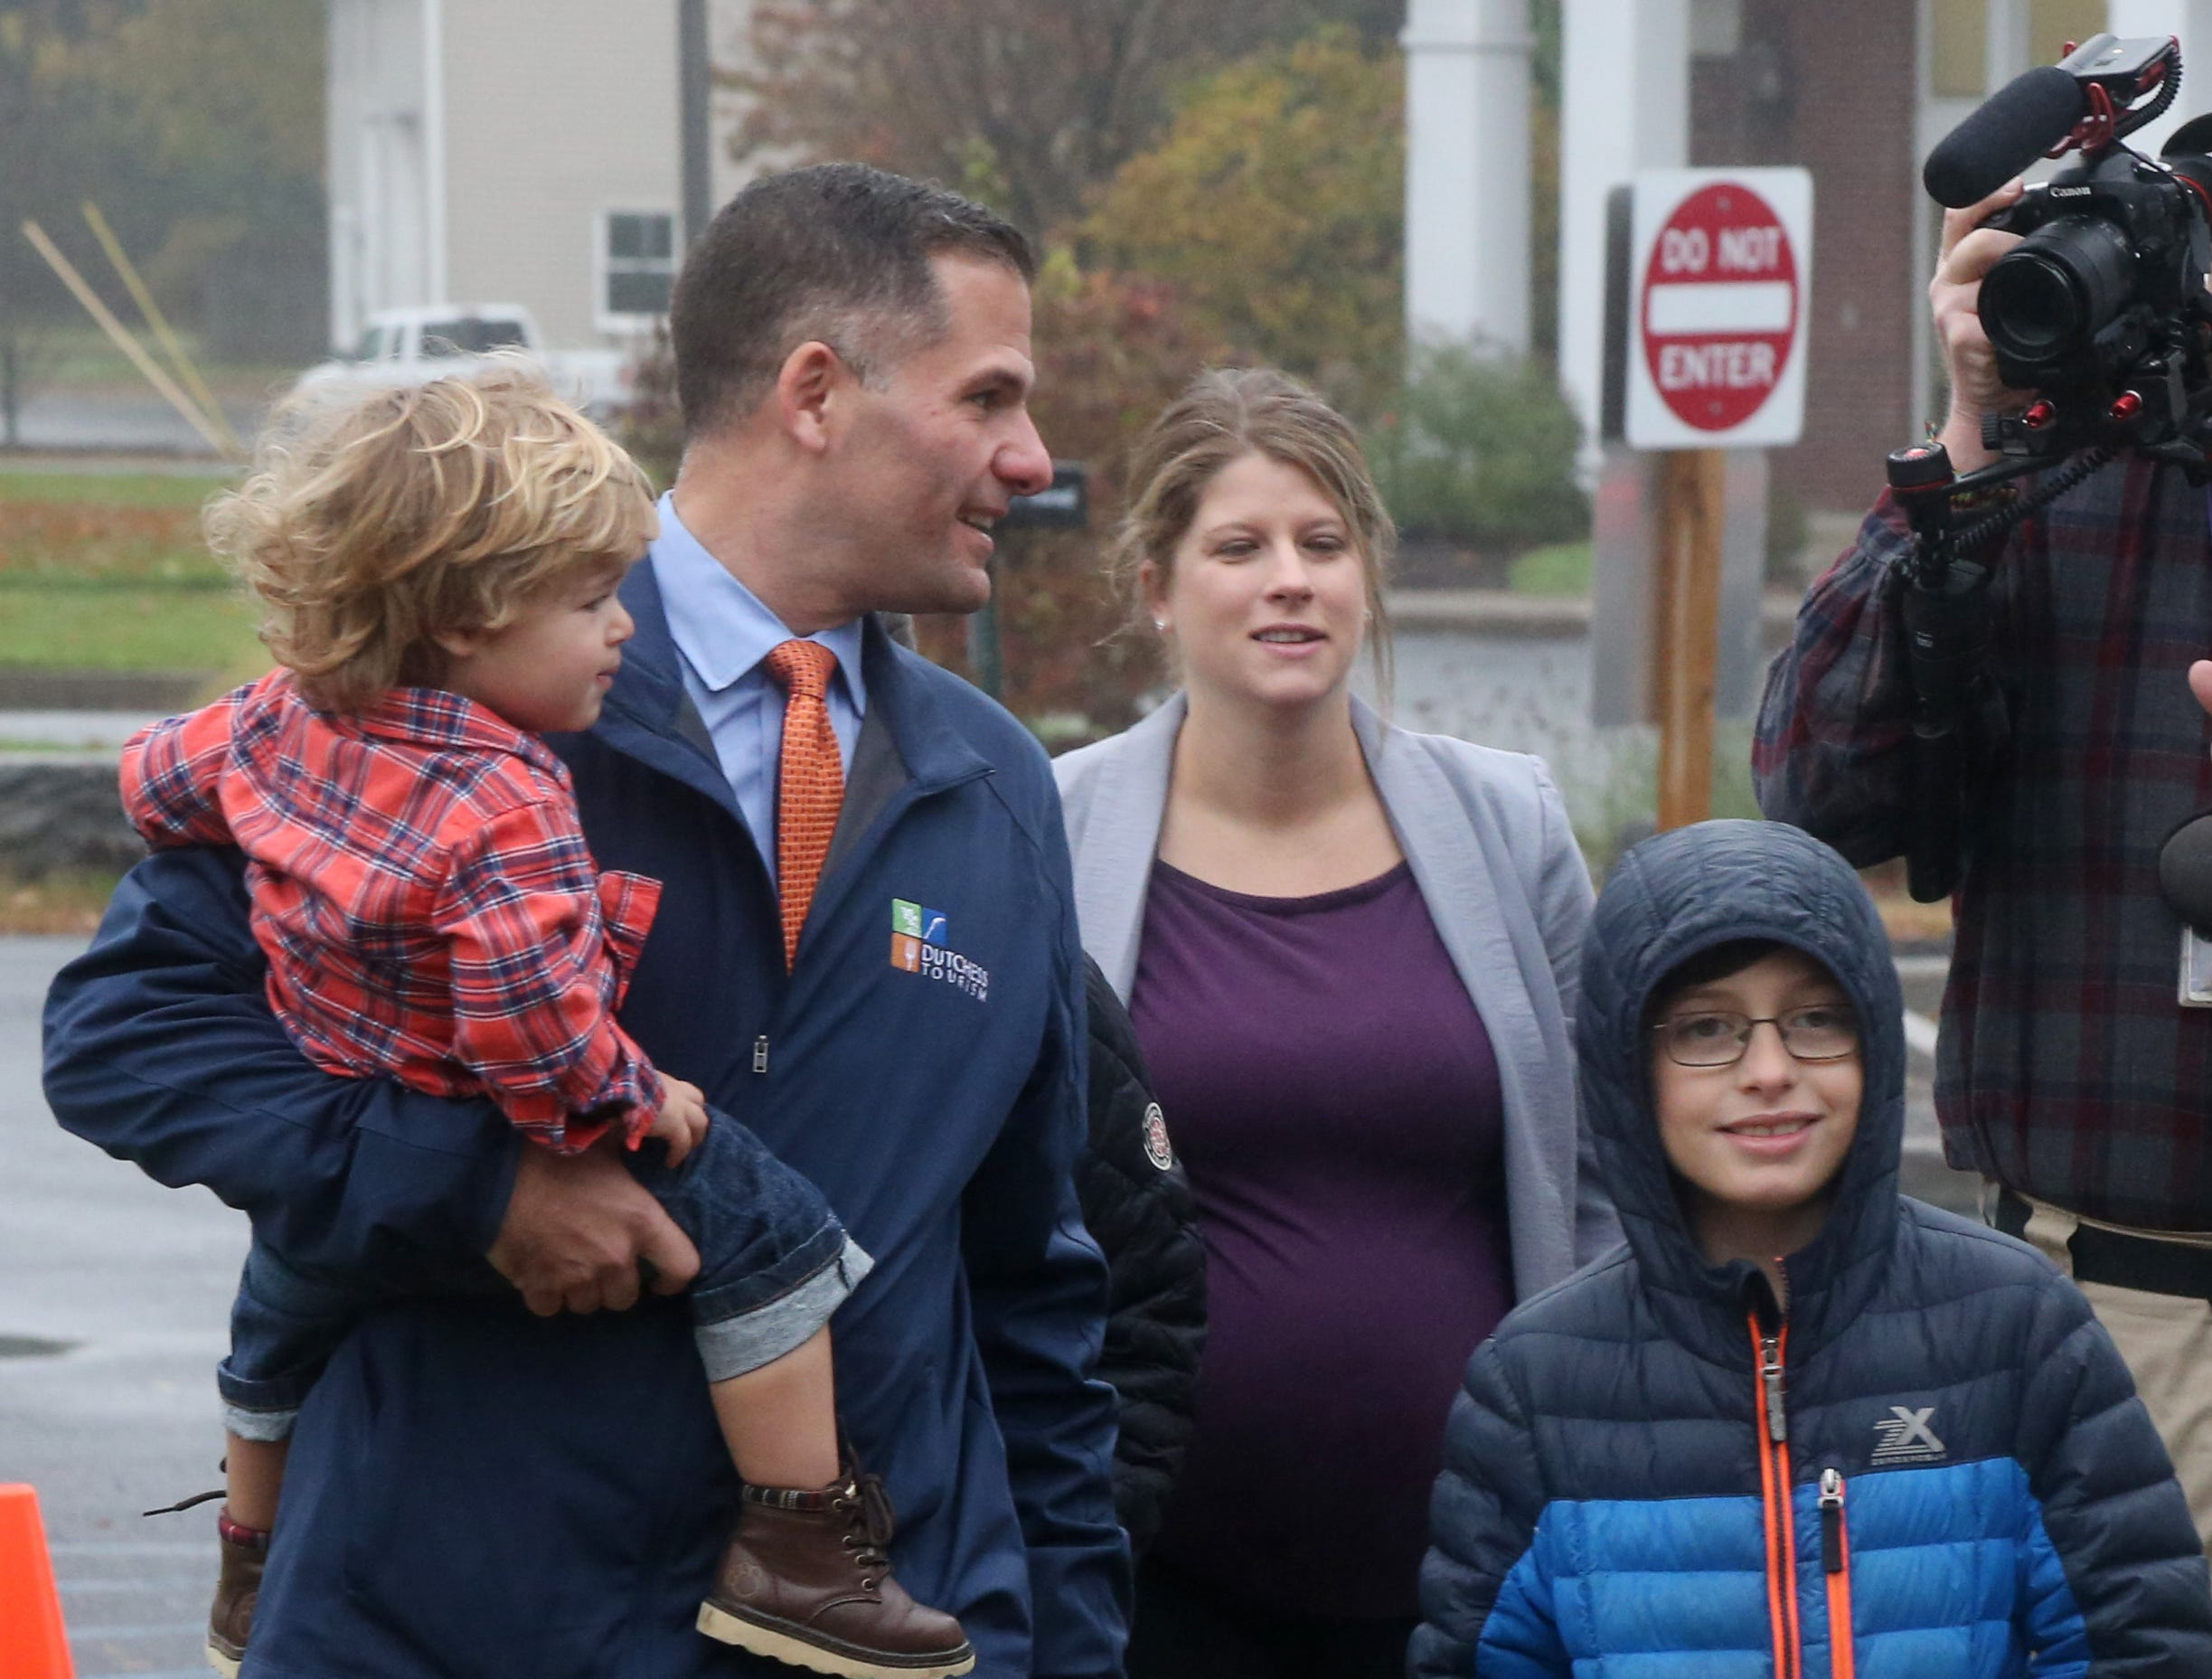 Republican Gubernatorial candidate Marc Molinaro walks in to Red Hook Town Hall to cast his ballot on November 6, 2018. Molinaro holds his son Elias, and is followed by his wife Corinne and son Jack